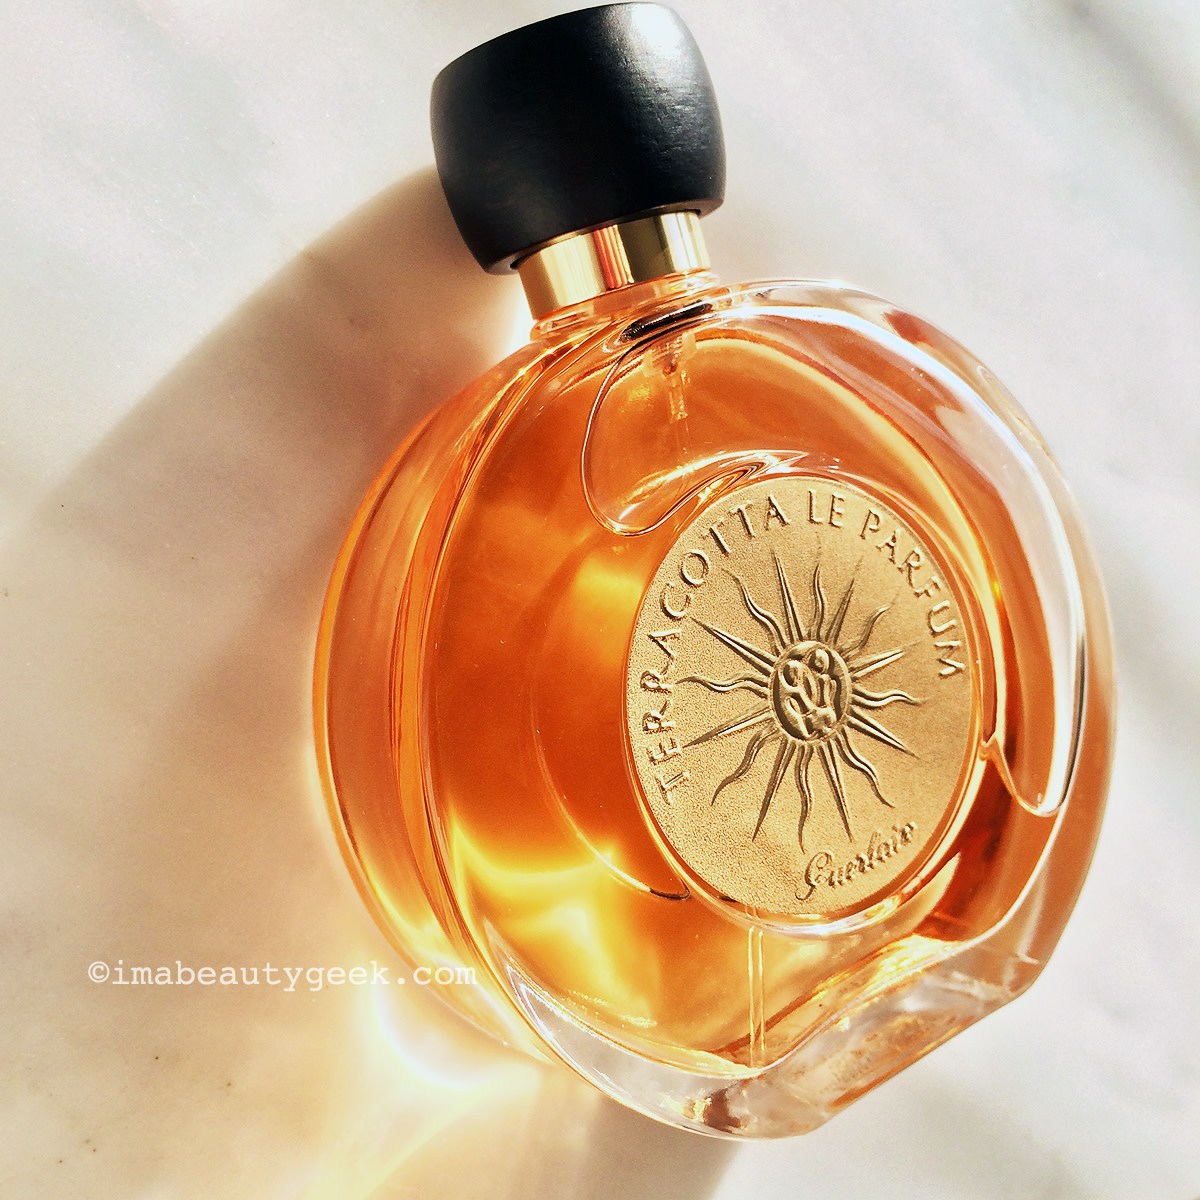 Spraycation fragrance: Guerlain Terracotta le Parfum